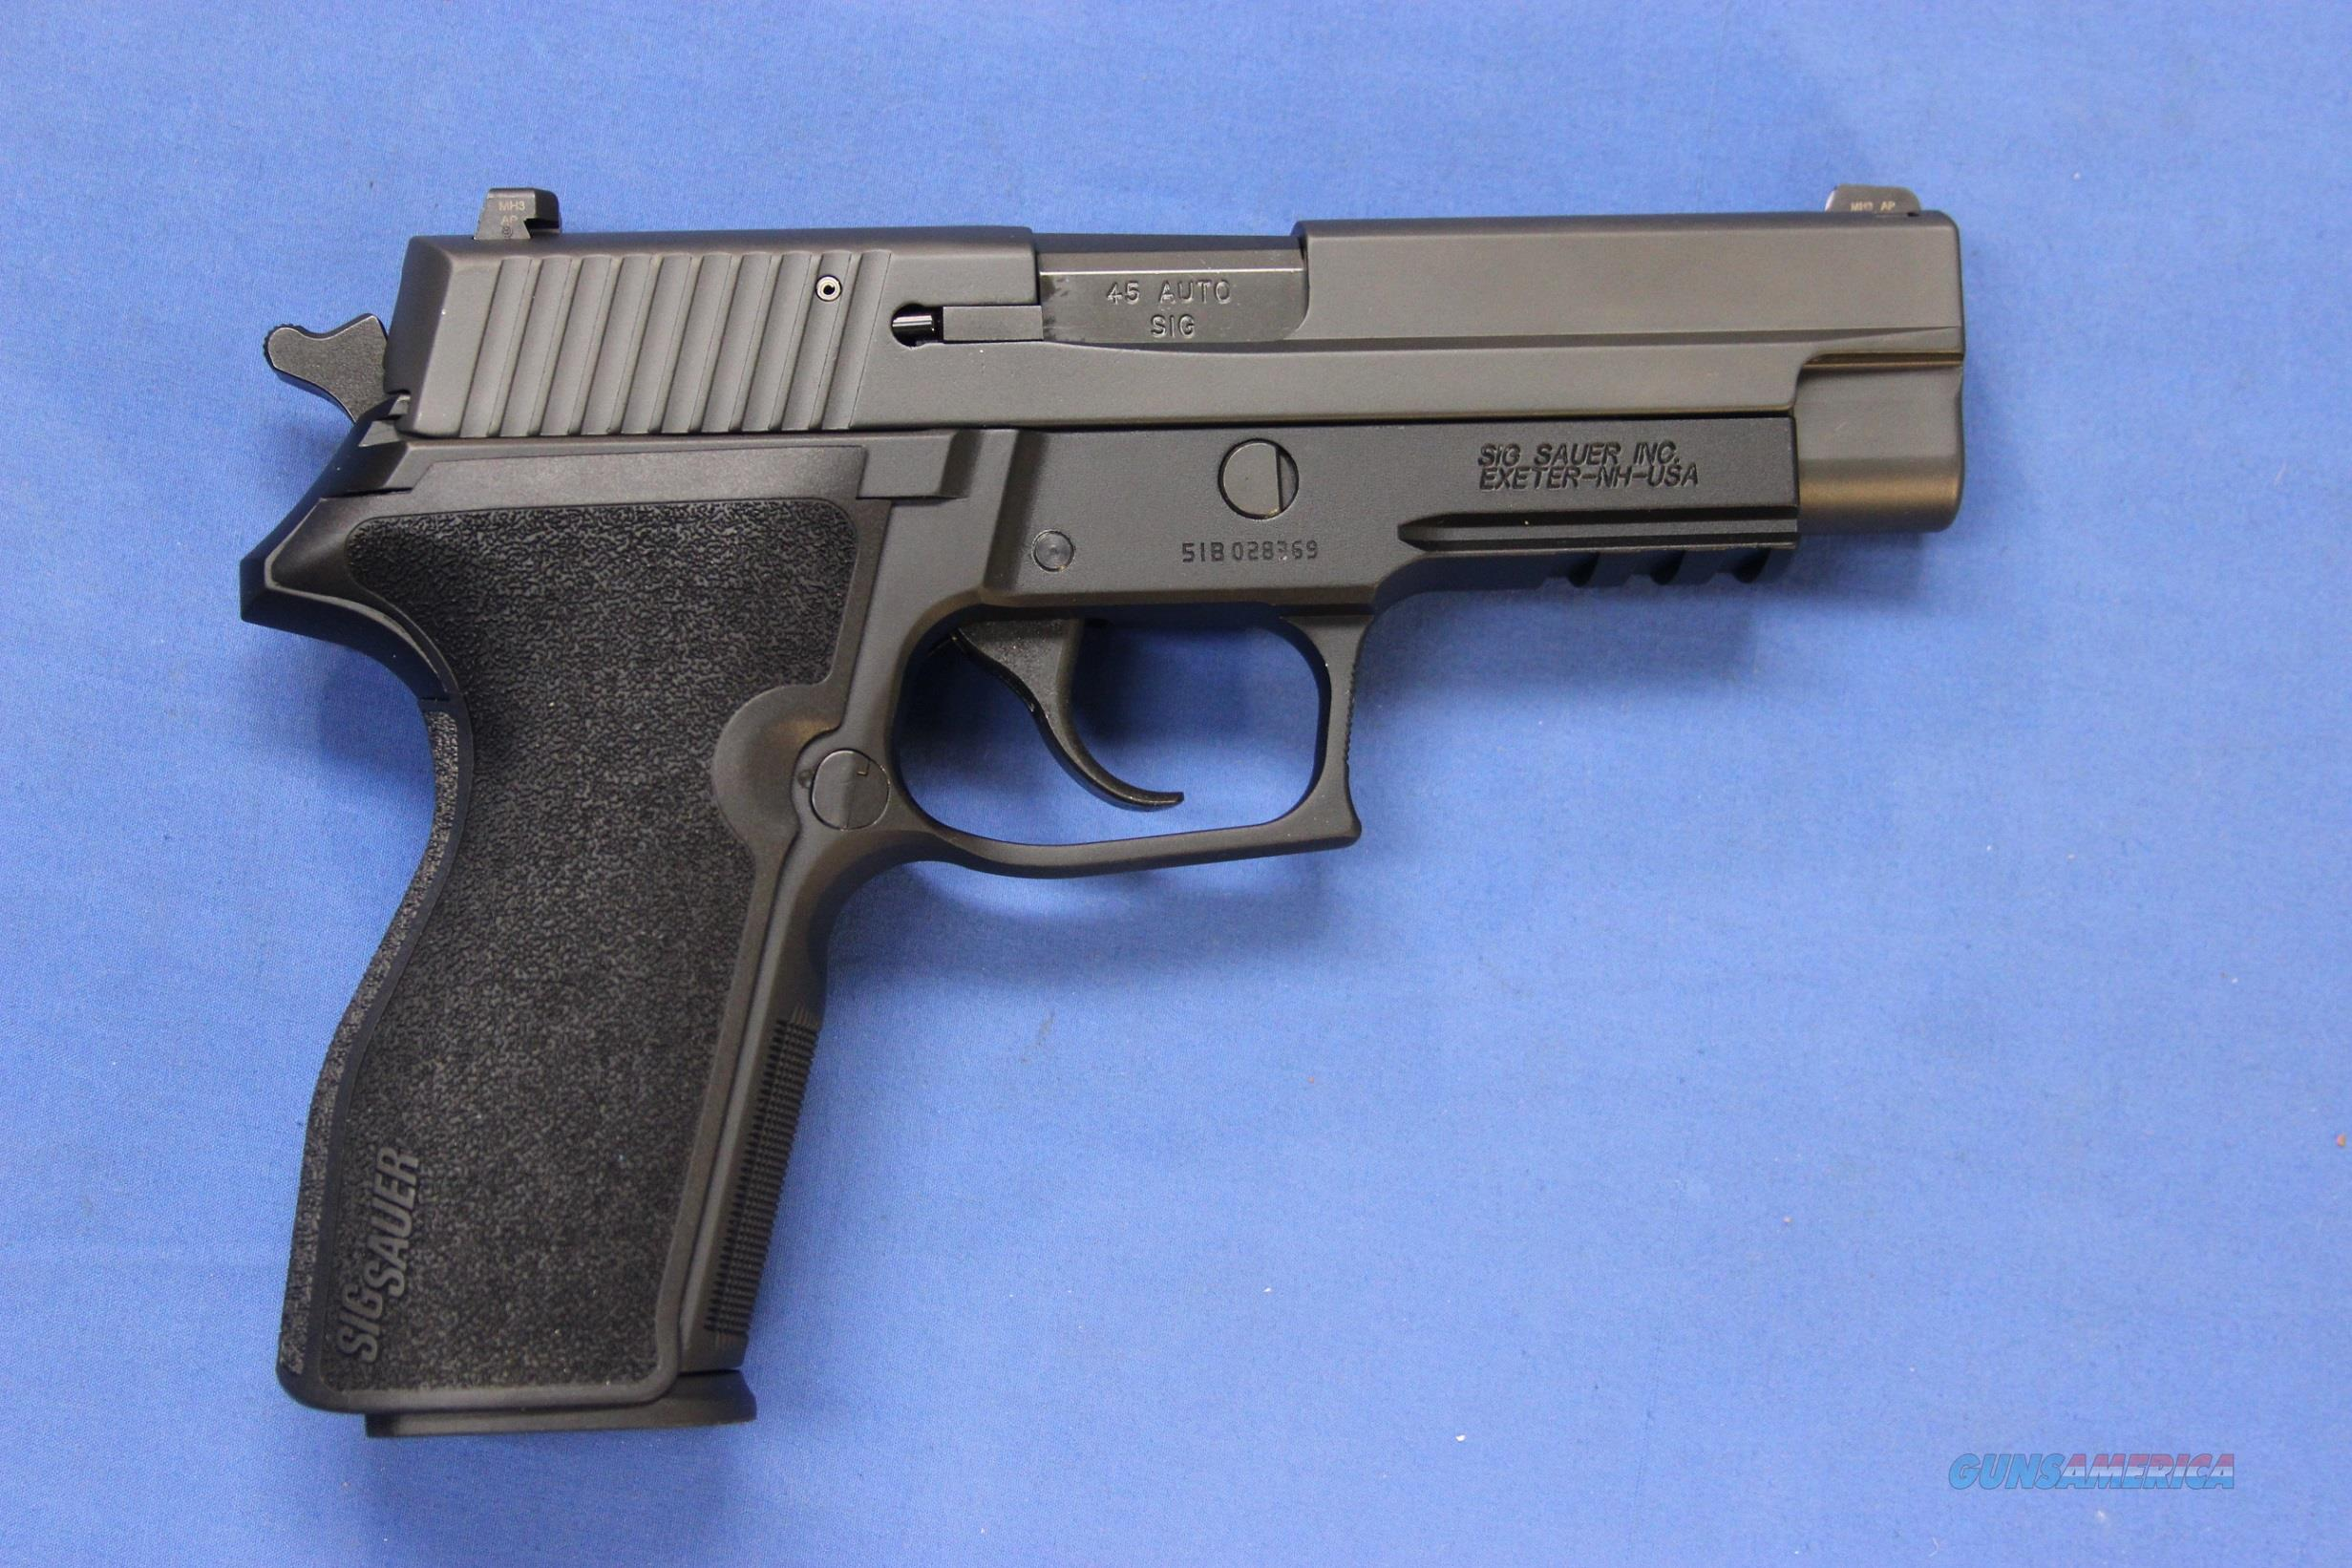 SIG SAUER P227R .45 ACP P227 - LIKE NEW IN BOX w/2 MAGS  Guns > Pistols > Sig - Sauer/Sigarms Pistols > P227